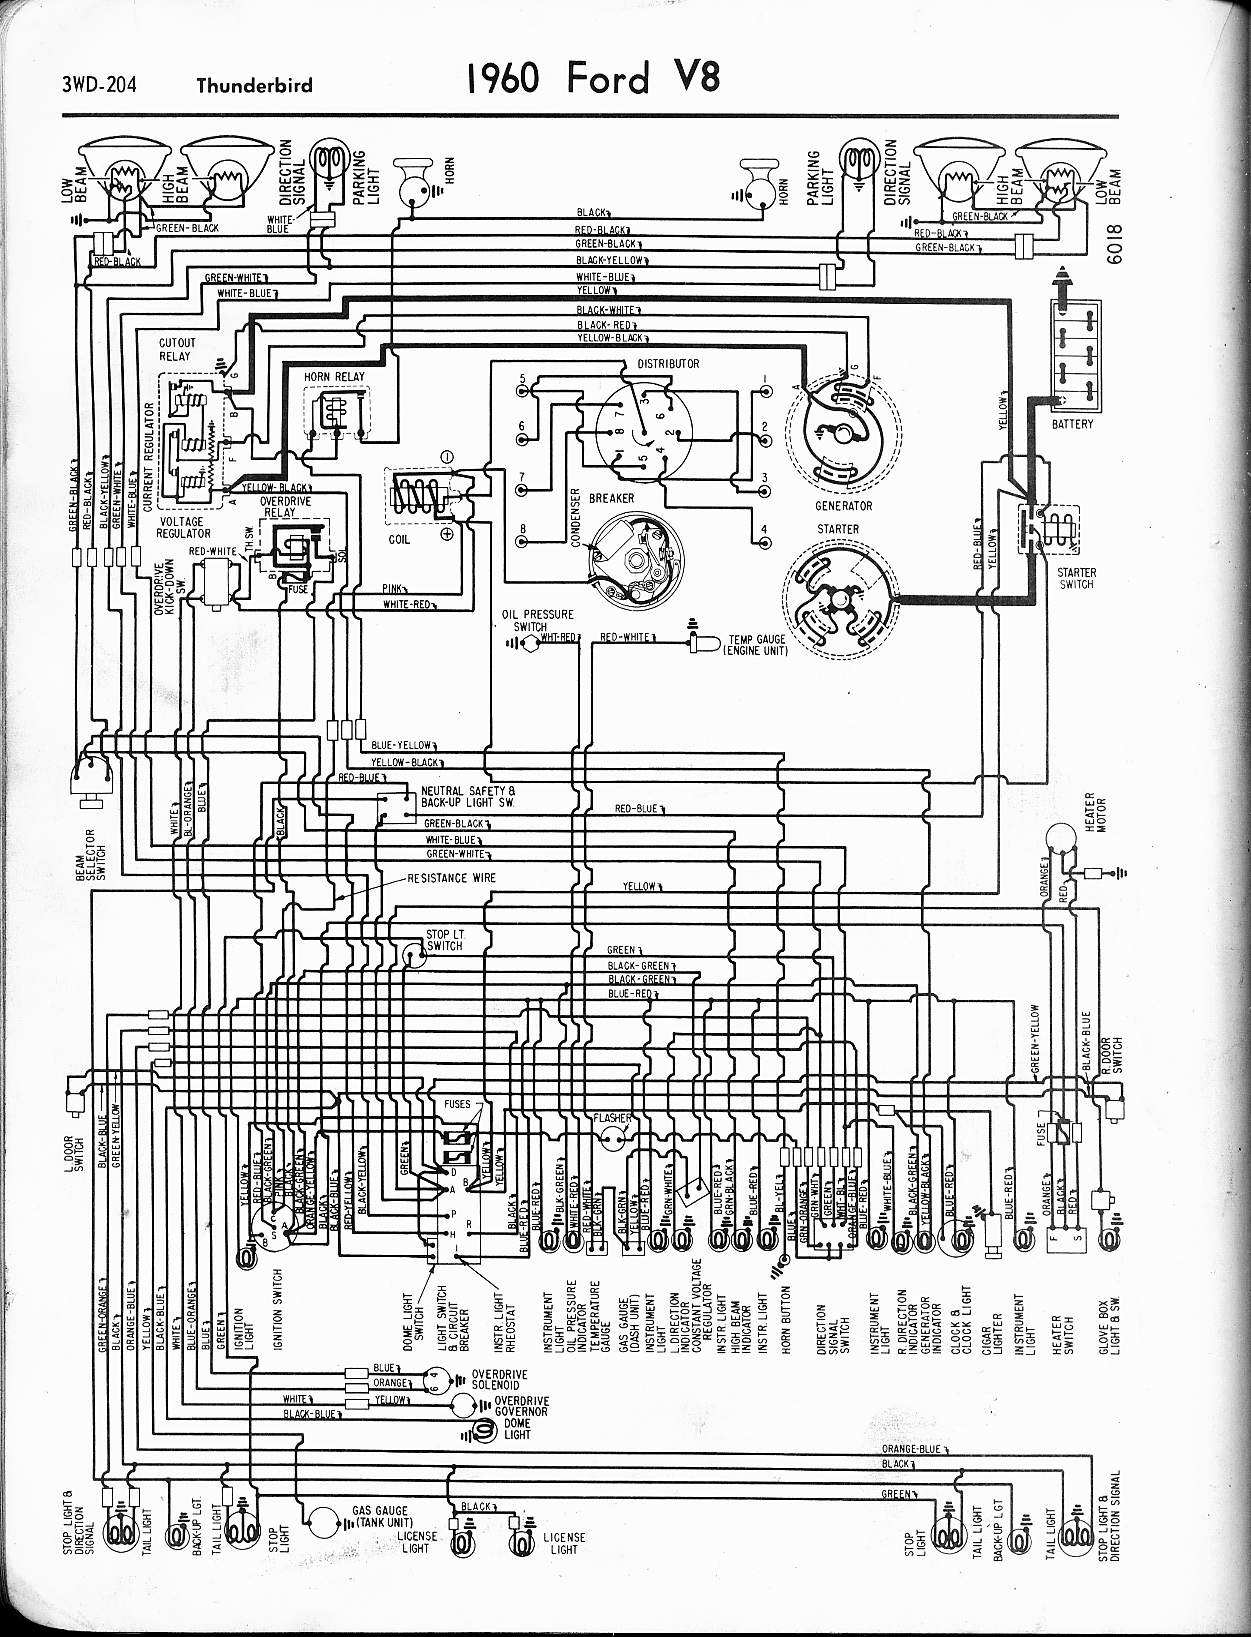 wiring diagram for 1961 ford falcon